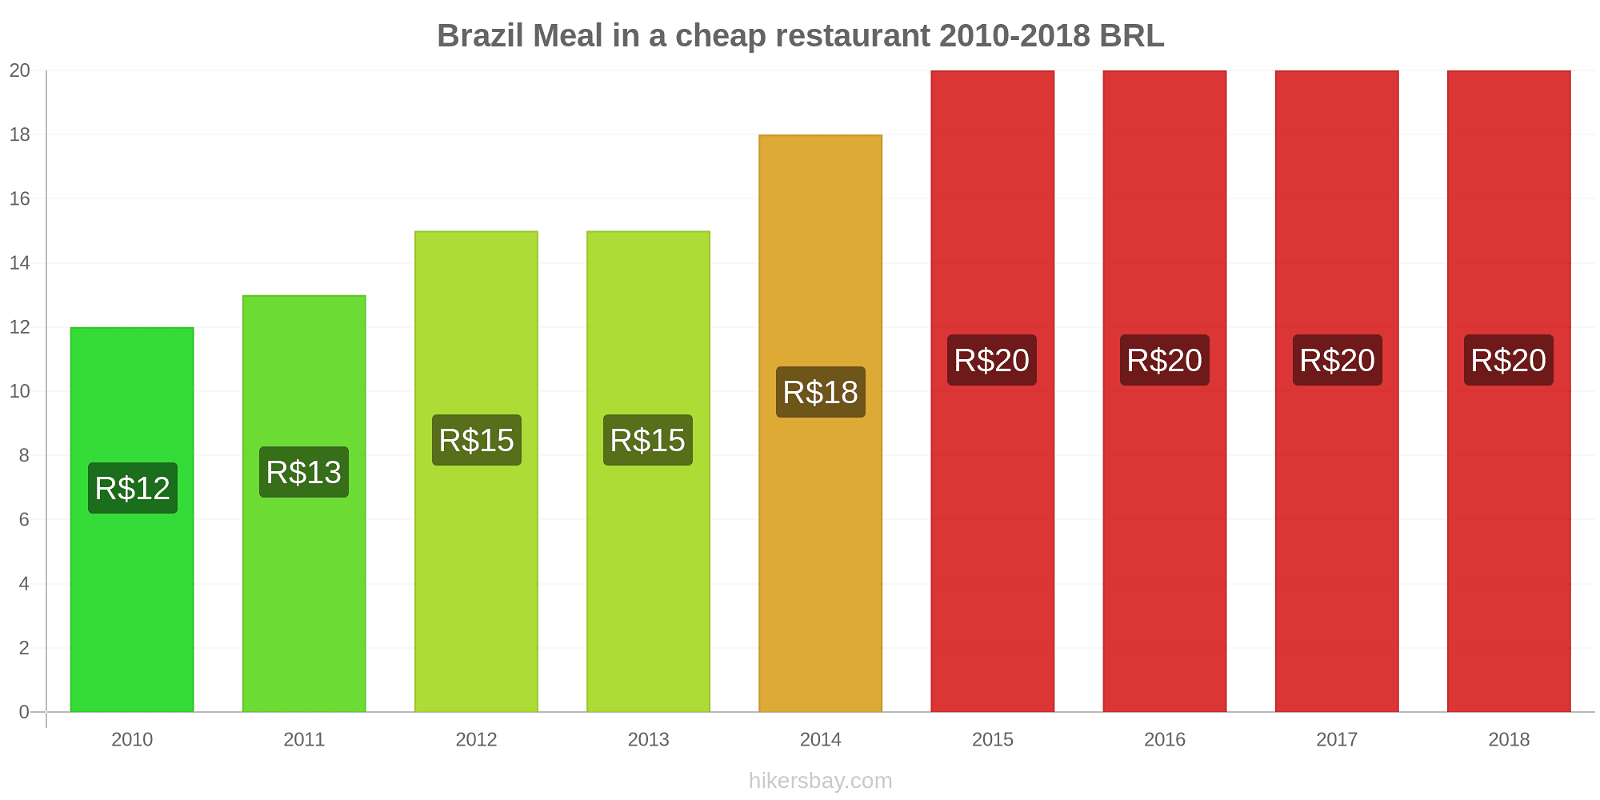 Brazil price changes Meal in a cheap restaurant hikersbay.com